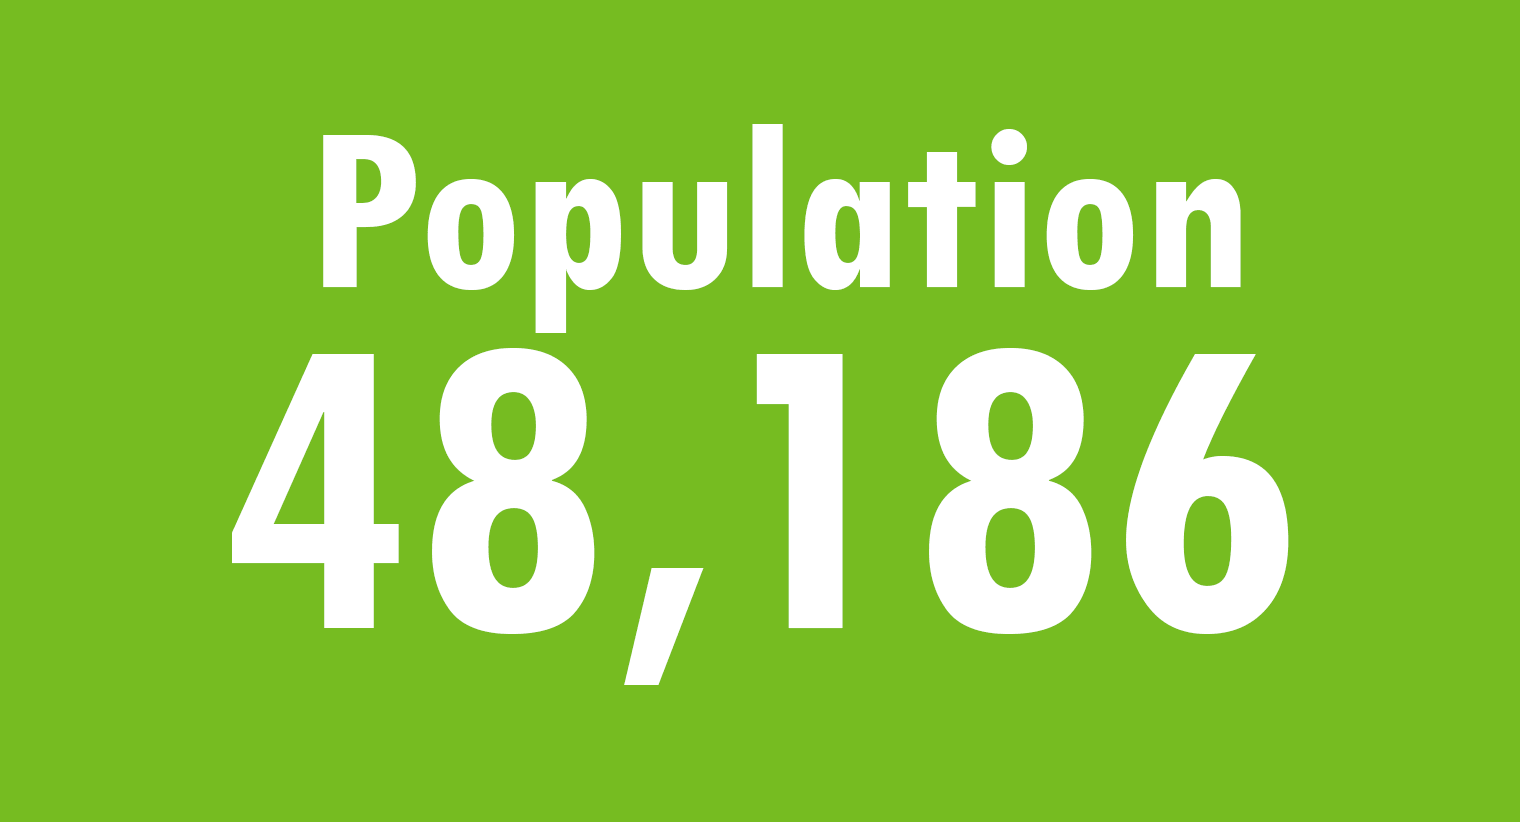 Infographic on Population size in Roswell